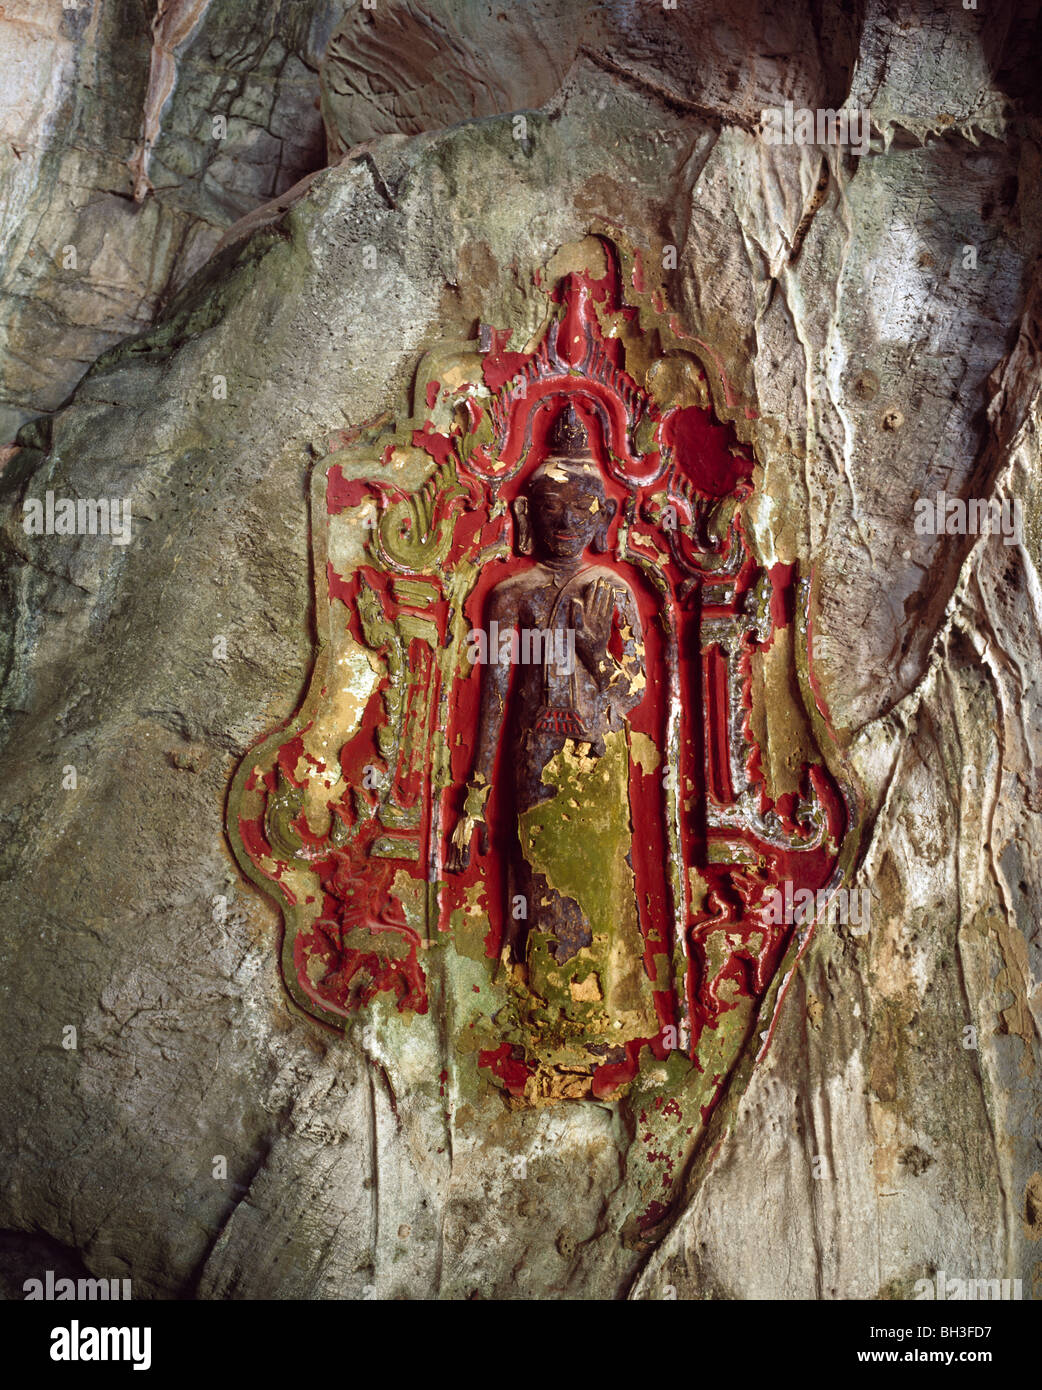 rock  carving of a buddhistic images in Yathaypyan Cave Buddhistisches Felsbild in der Yathaypyan Höhle Myanmar - Stock Image